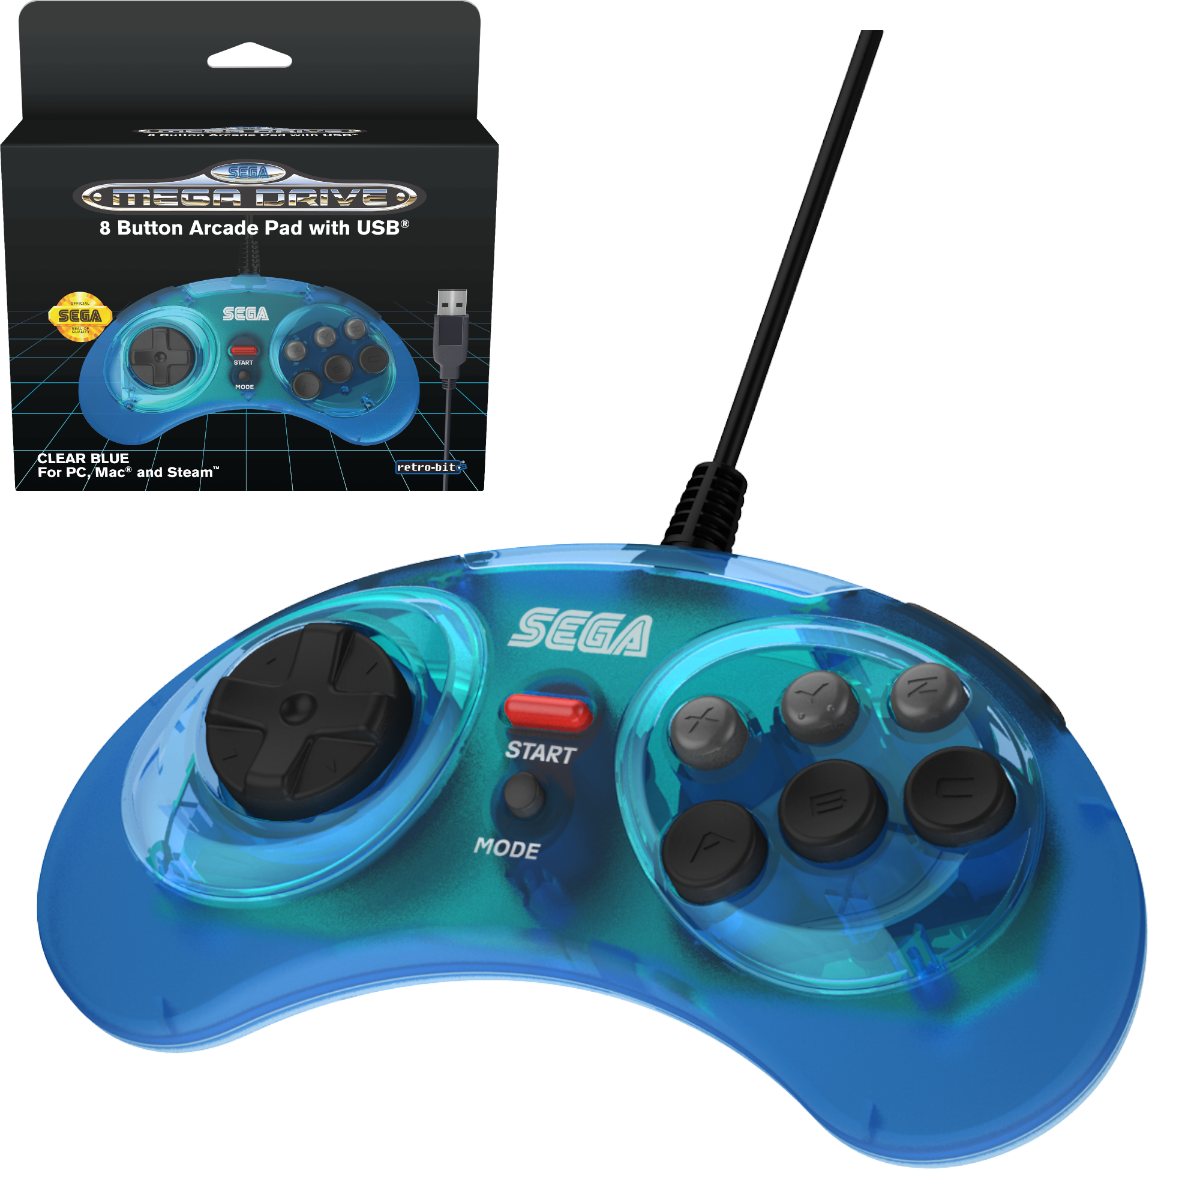 SEGA, Mega Drive, Arcade Pad, 8 Button, Clear Blue, USB